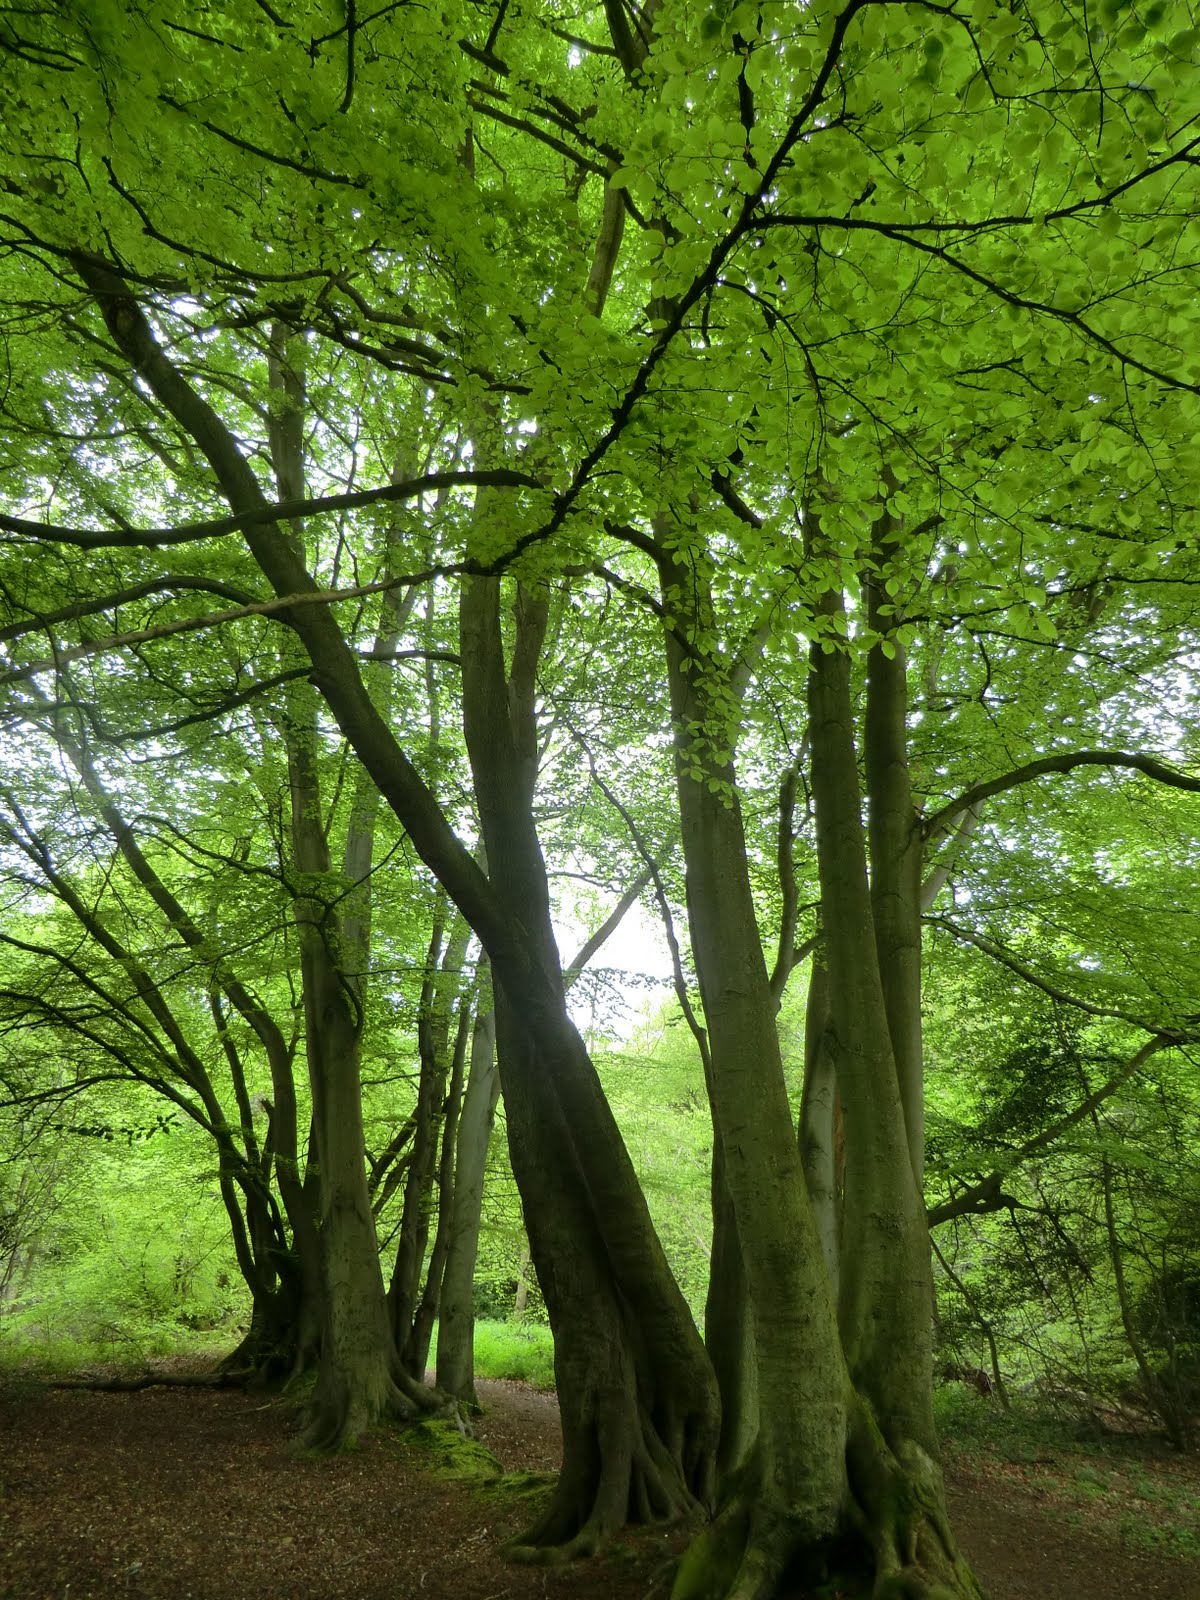 CIMG2928 Beech trees in spring, The Chart